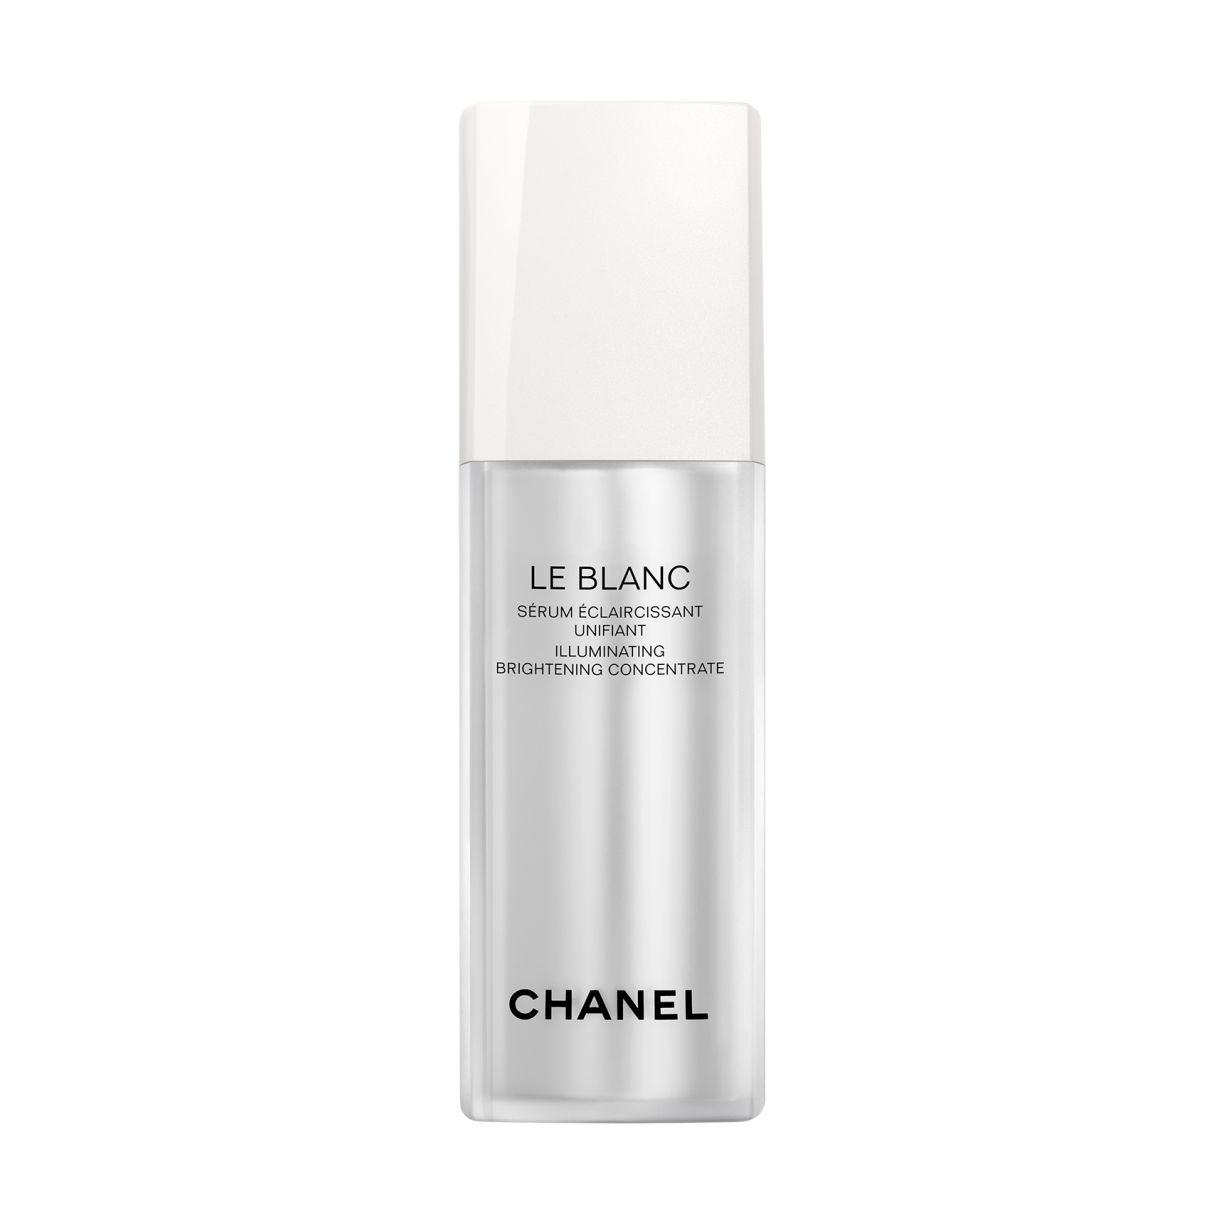 LE BLANC SIERO LUMINOSITÀ ANTIMACCHIE 30ml